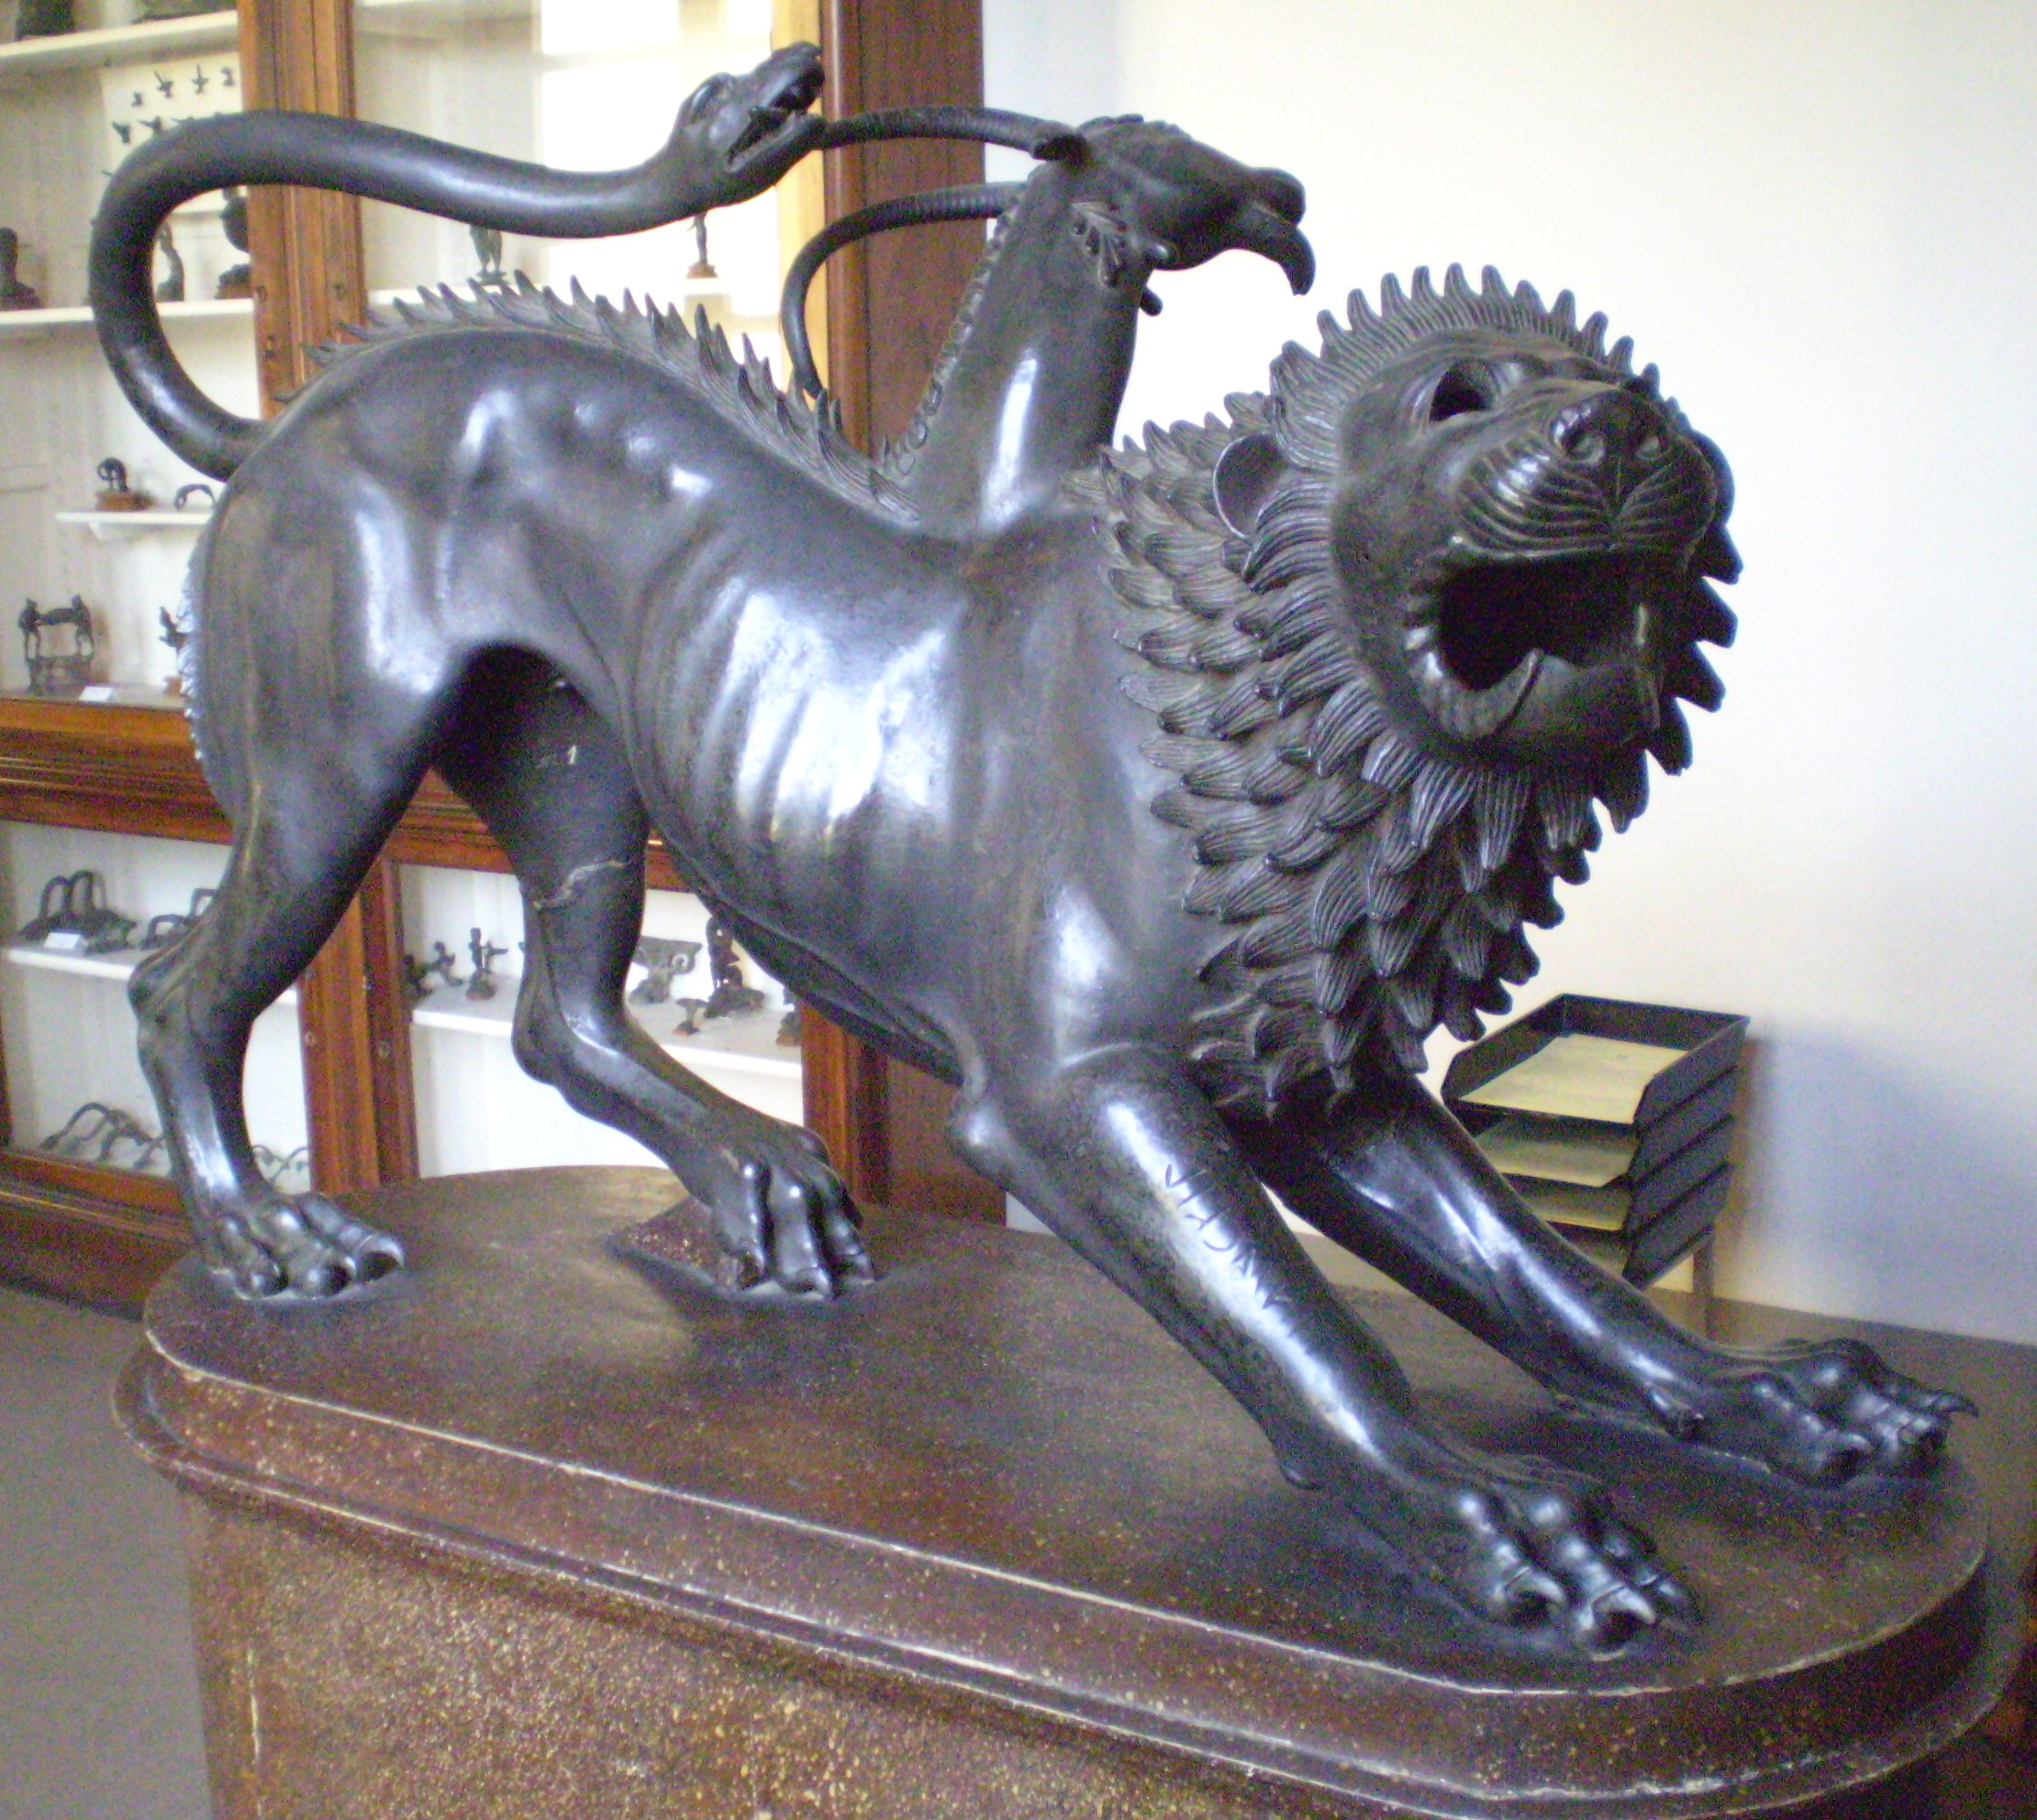 https://upload.wikimedia.org/wikipedia/commons/b/bc/Chimera_di_Arezzo.jpg